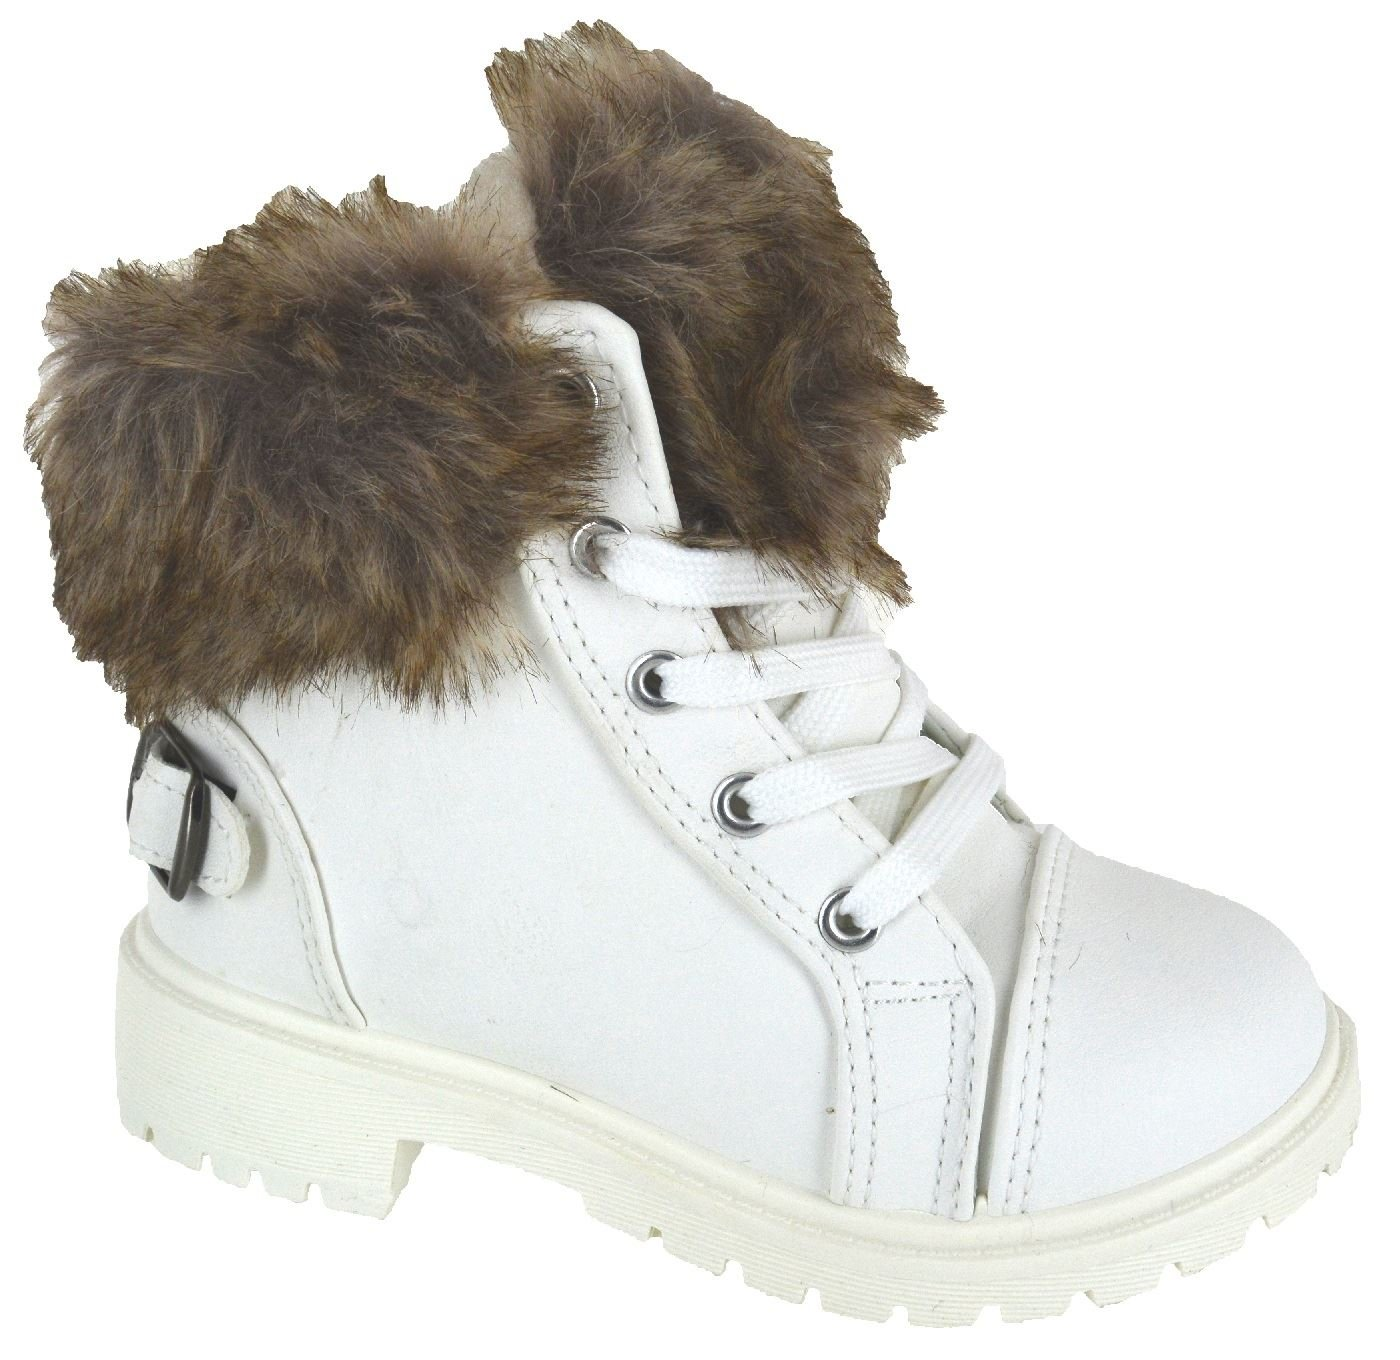 Yes Gameon Ladies Faux Fur Grip Sole Winter Warm Ankle Womens Boots  Trainers Womens Shoes Size UK 3-8: Amazon.co.uk: Shoes & Bags